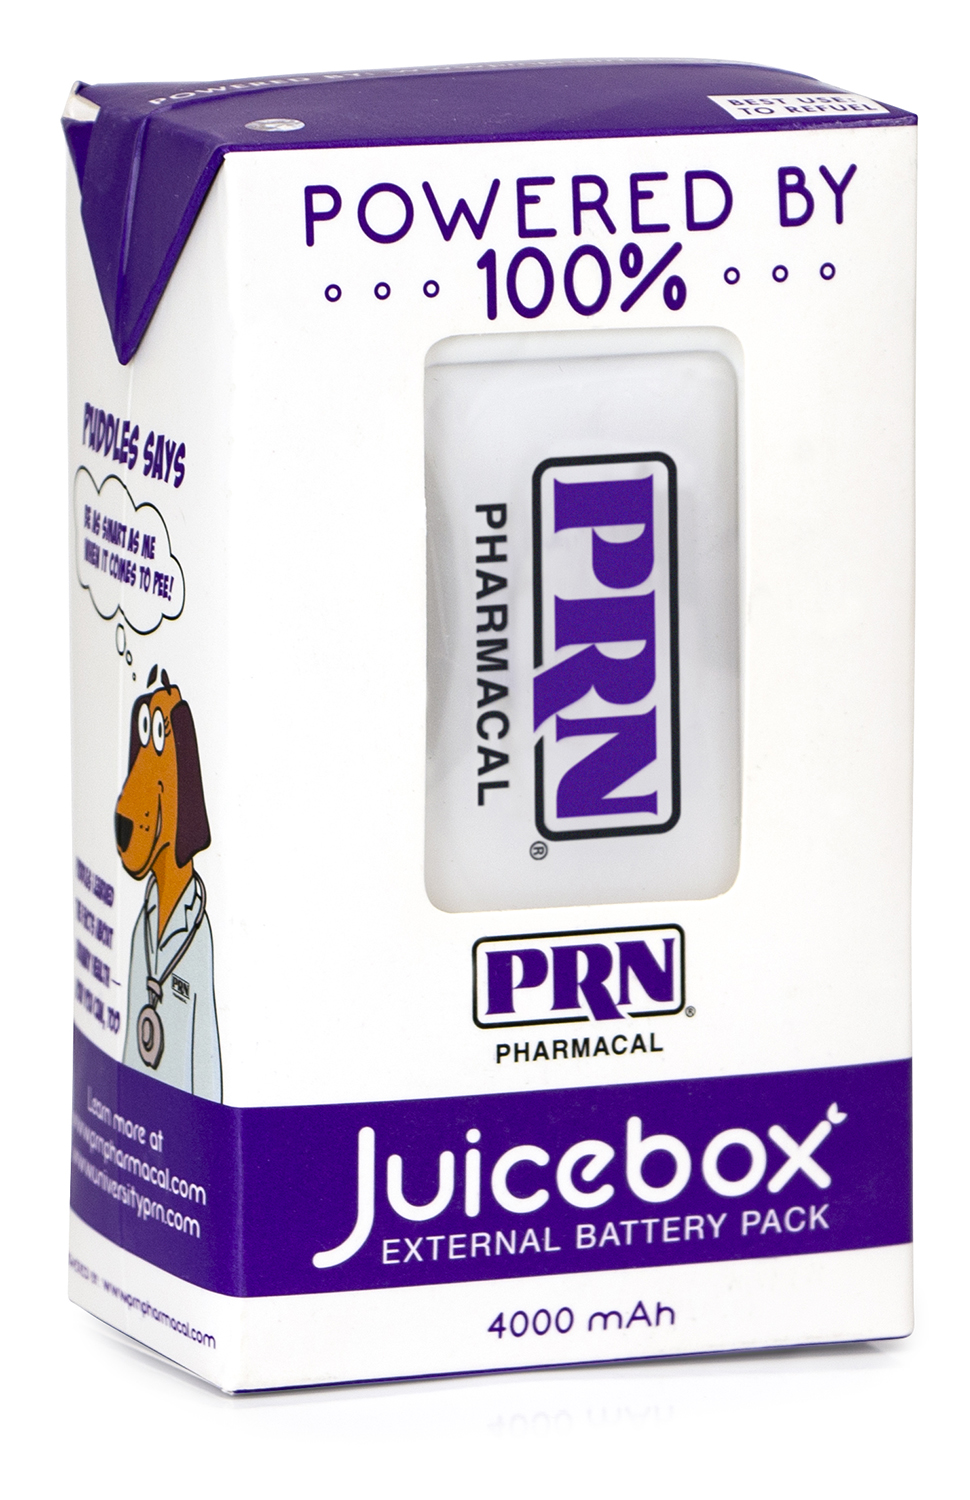 PRN Juicebox.jpg